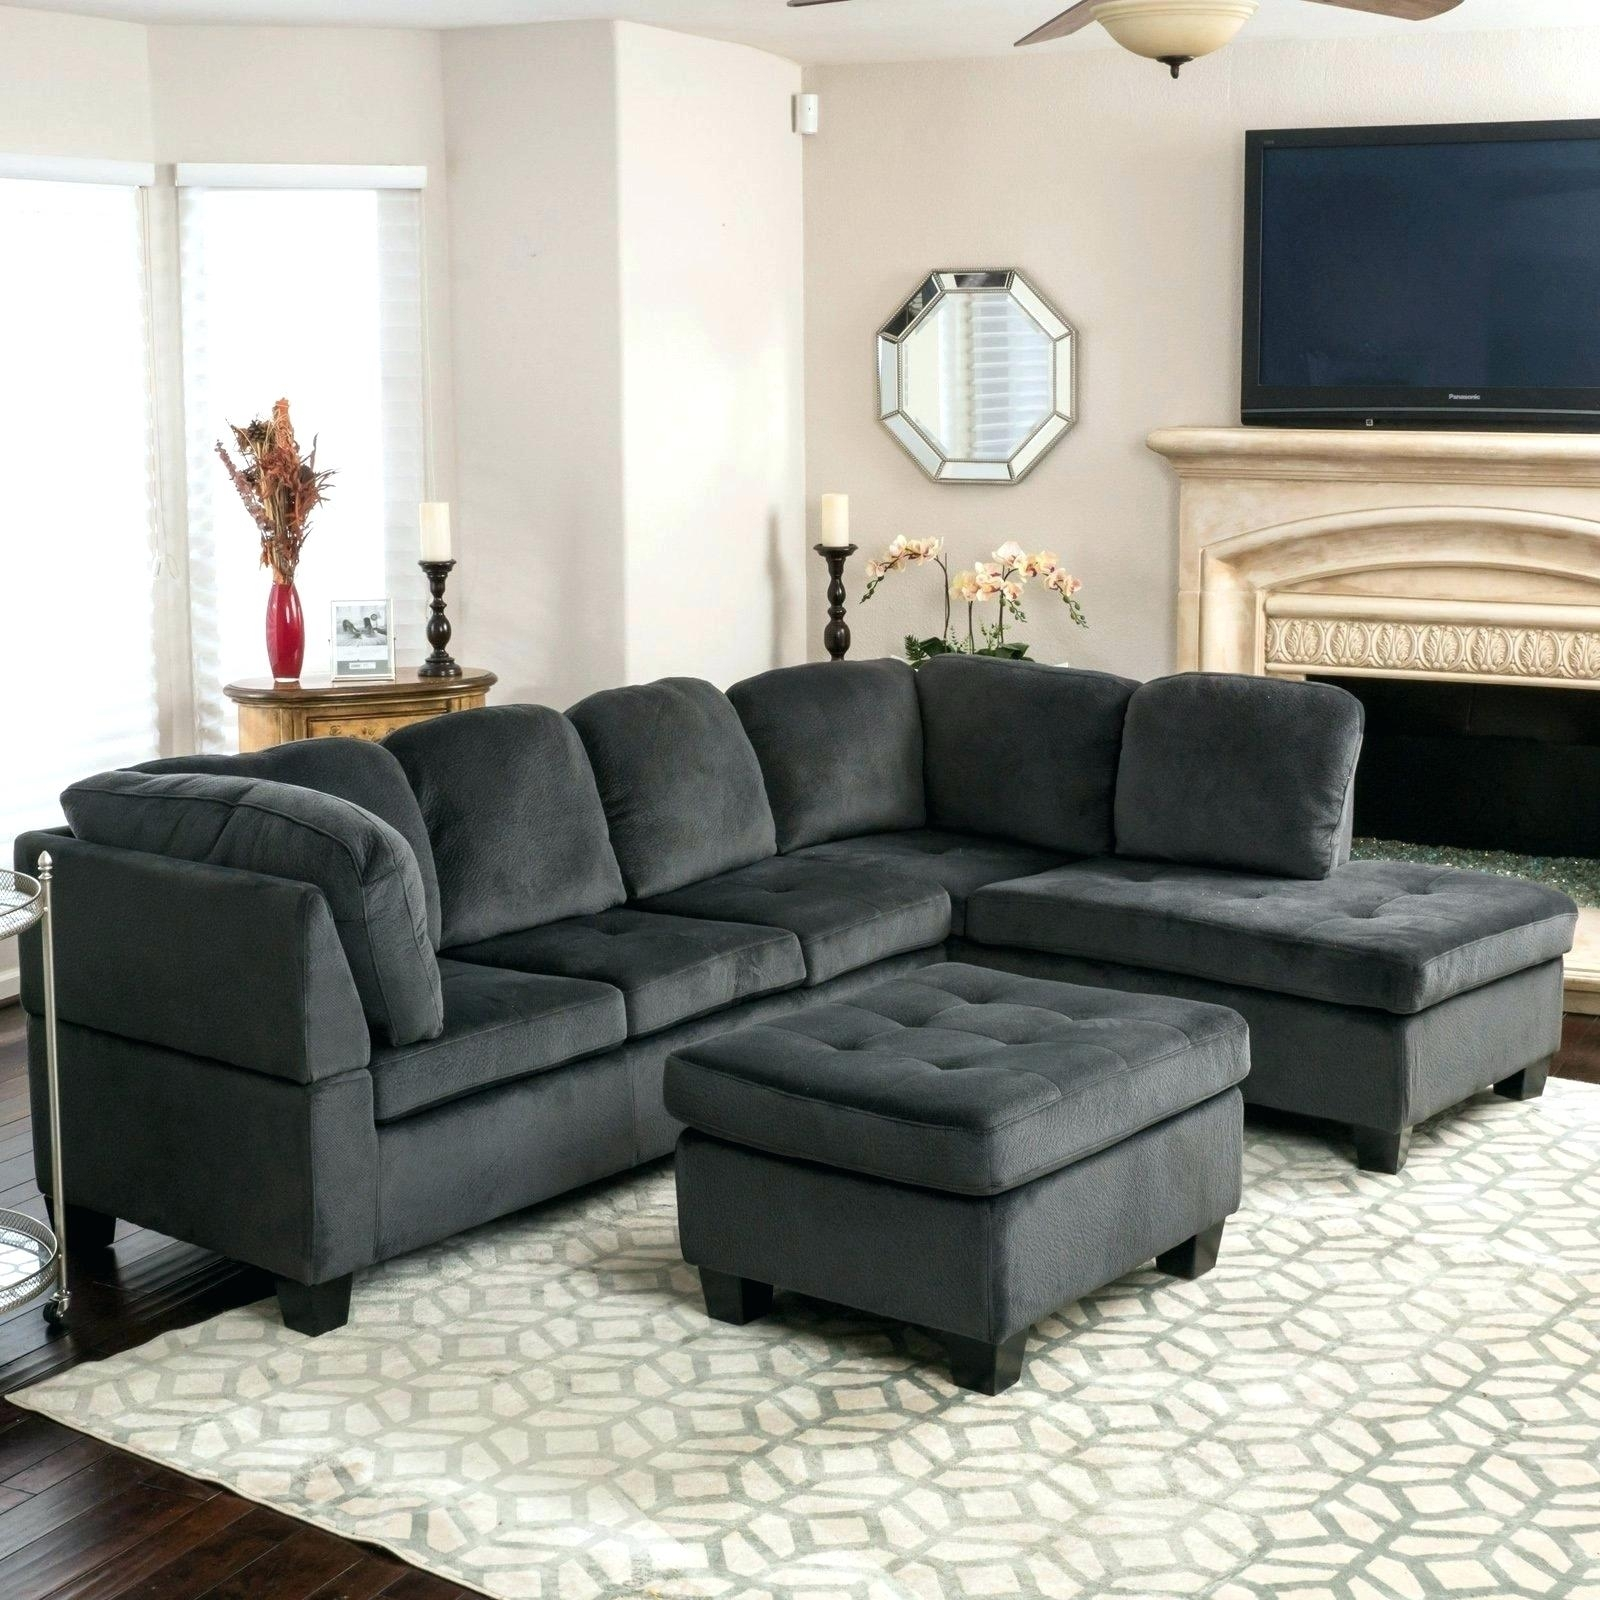 10 Top Canada Sale Sectional Sofas